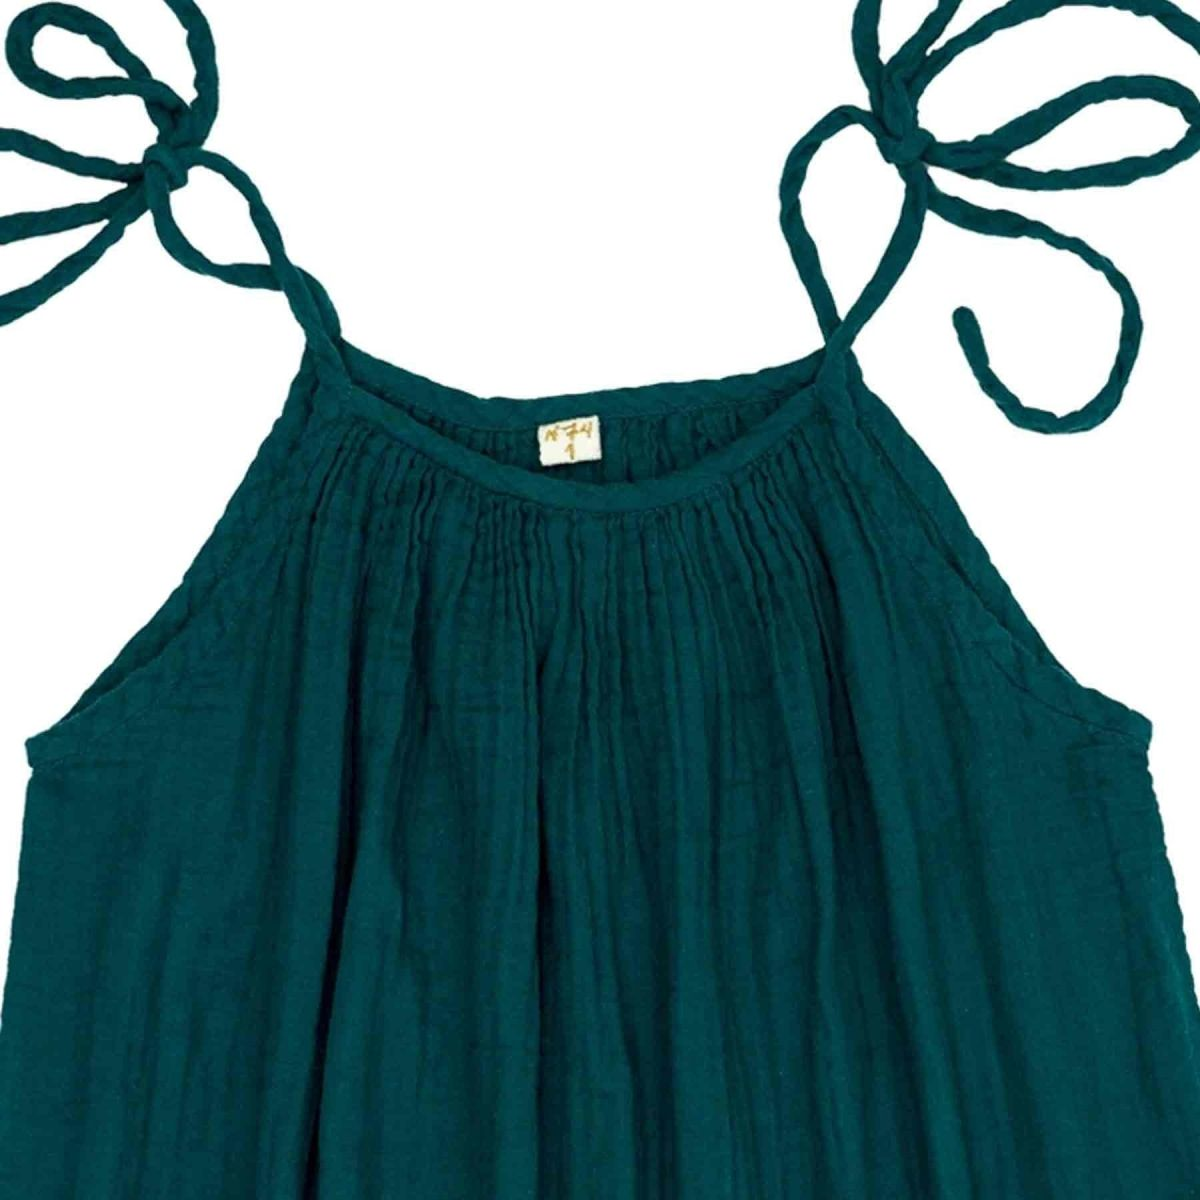 Dress short for mum Mia teal blue - Numero 74